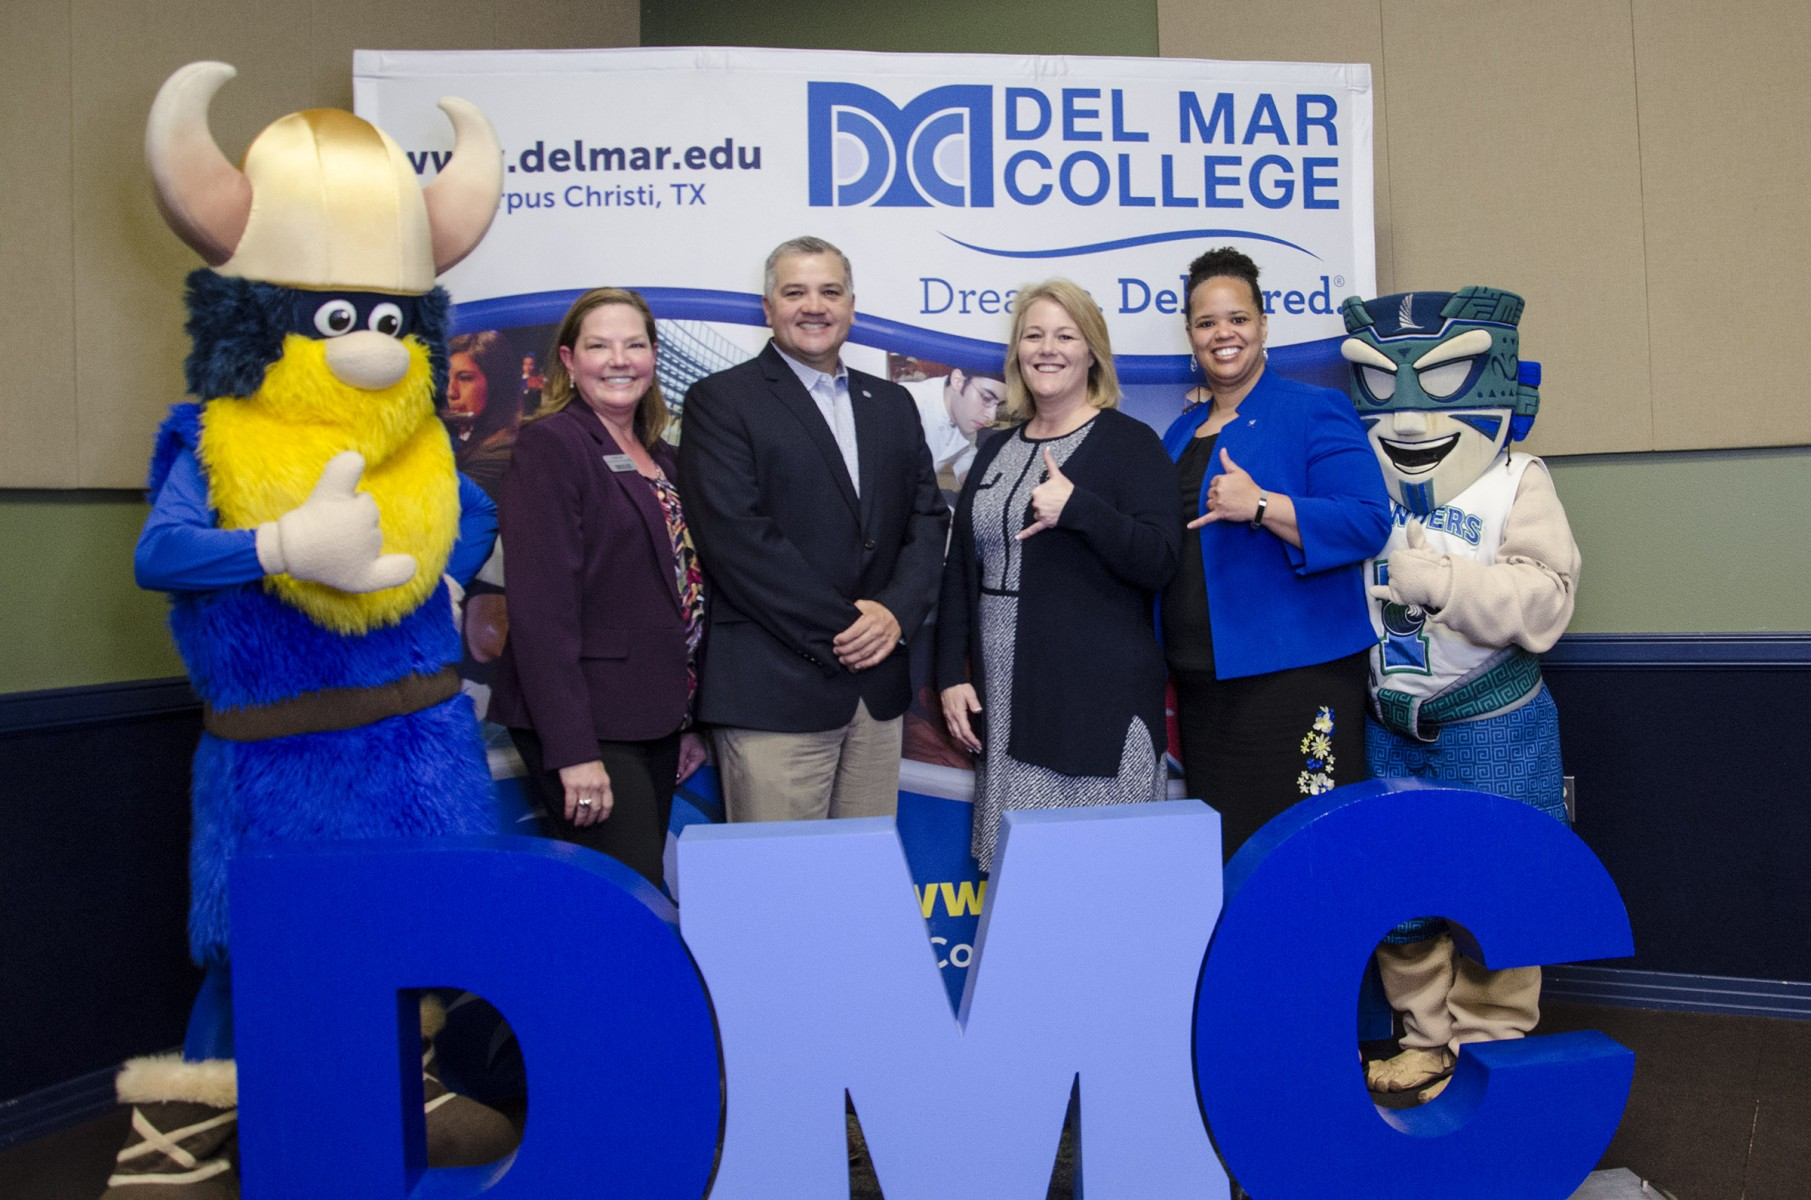 Valdar the Viking_Beth Lewis DMC_Mark Escamilla Del Mar College_Kelly Quintanilla TAMUCC_Clarenda Phillips TAMUCC_Izzy the Islander_Viking Islander Program Luncheon 2-15-2019_1